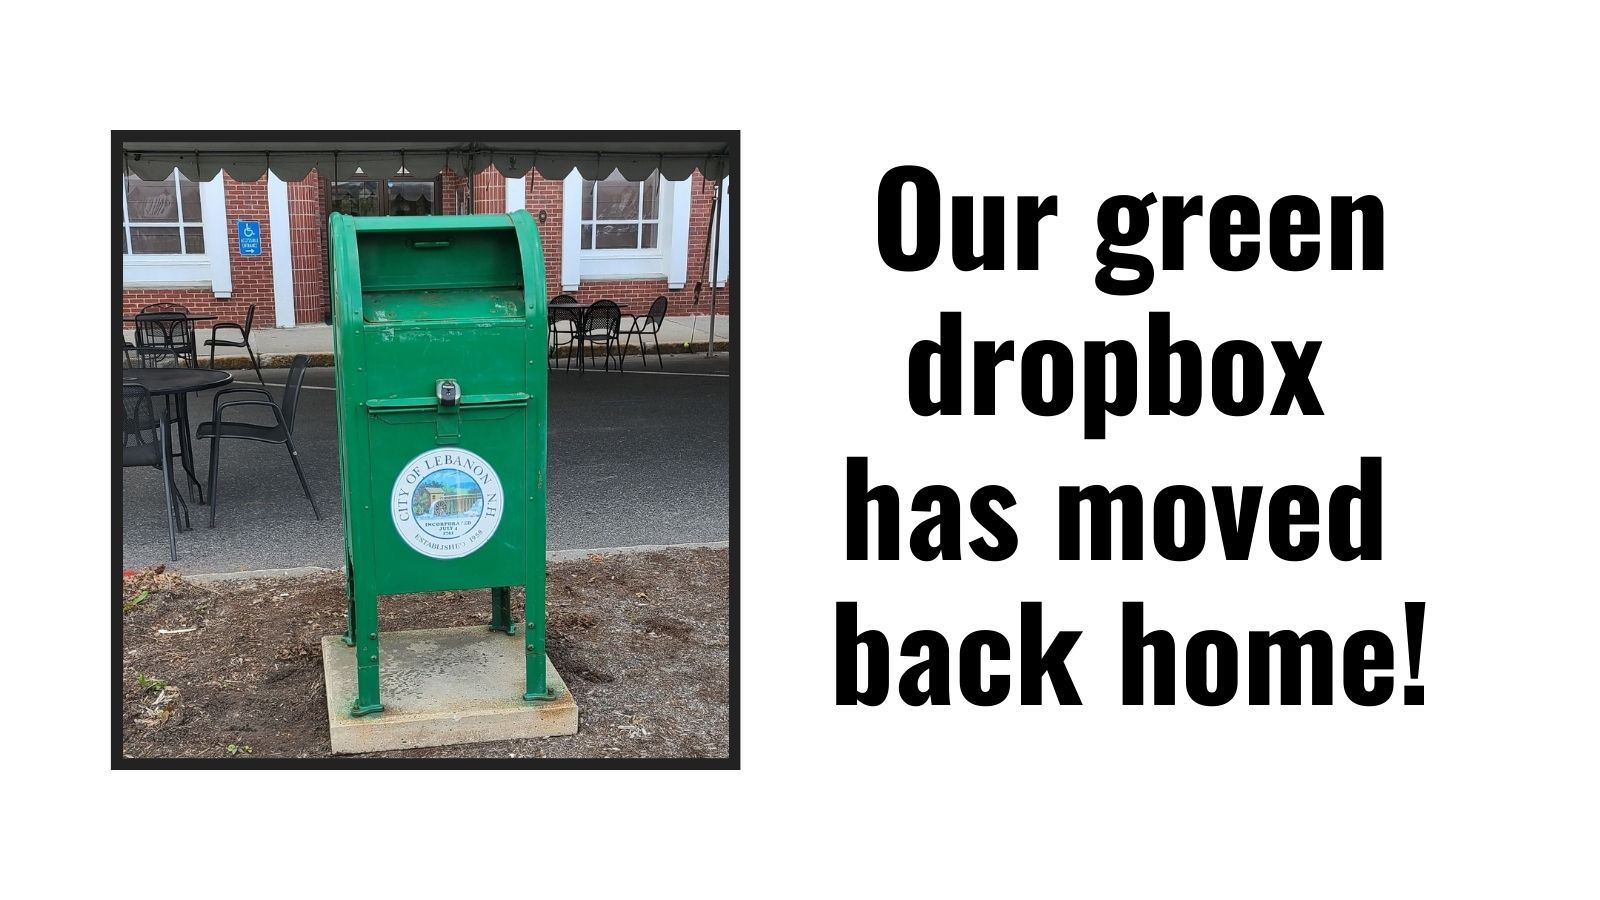 Our green dropbox is moving back home! with photo of dropbox